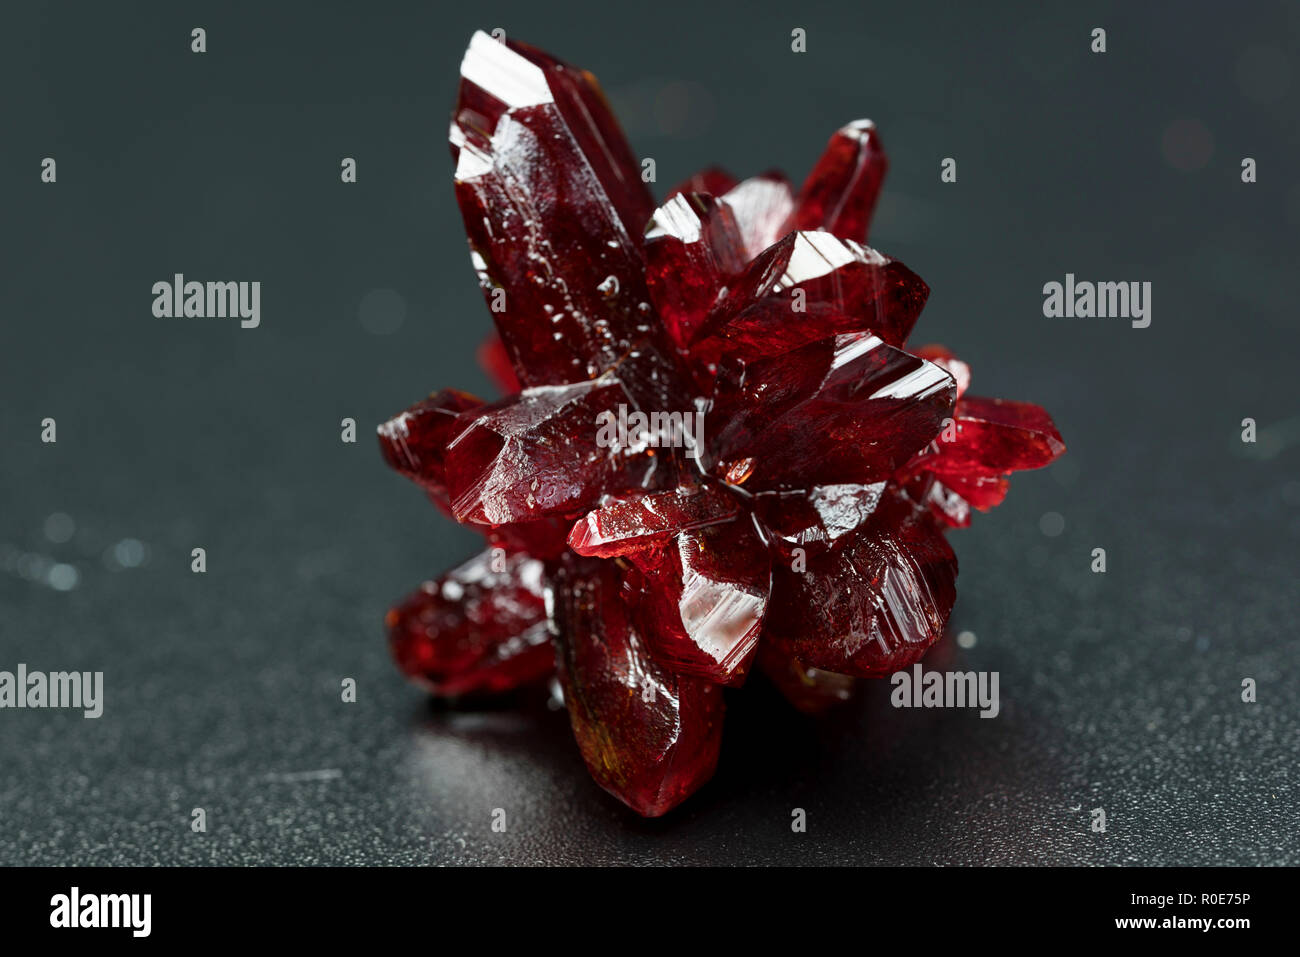 Red crystal mineral. - Stock Image